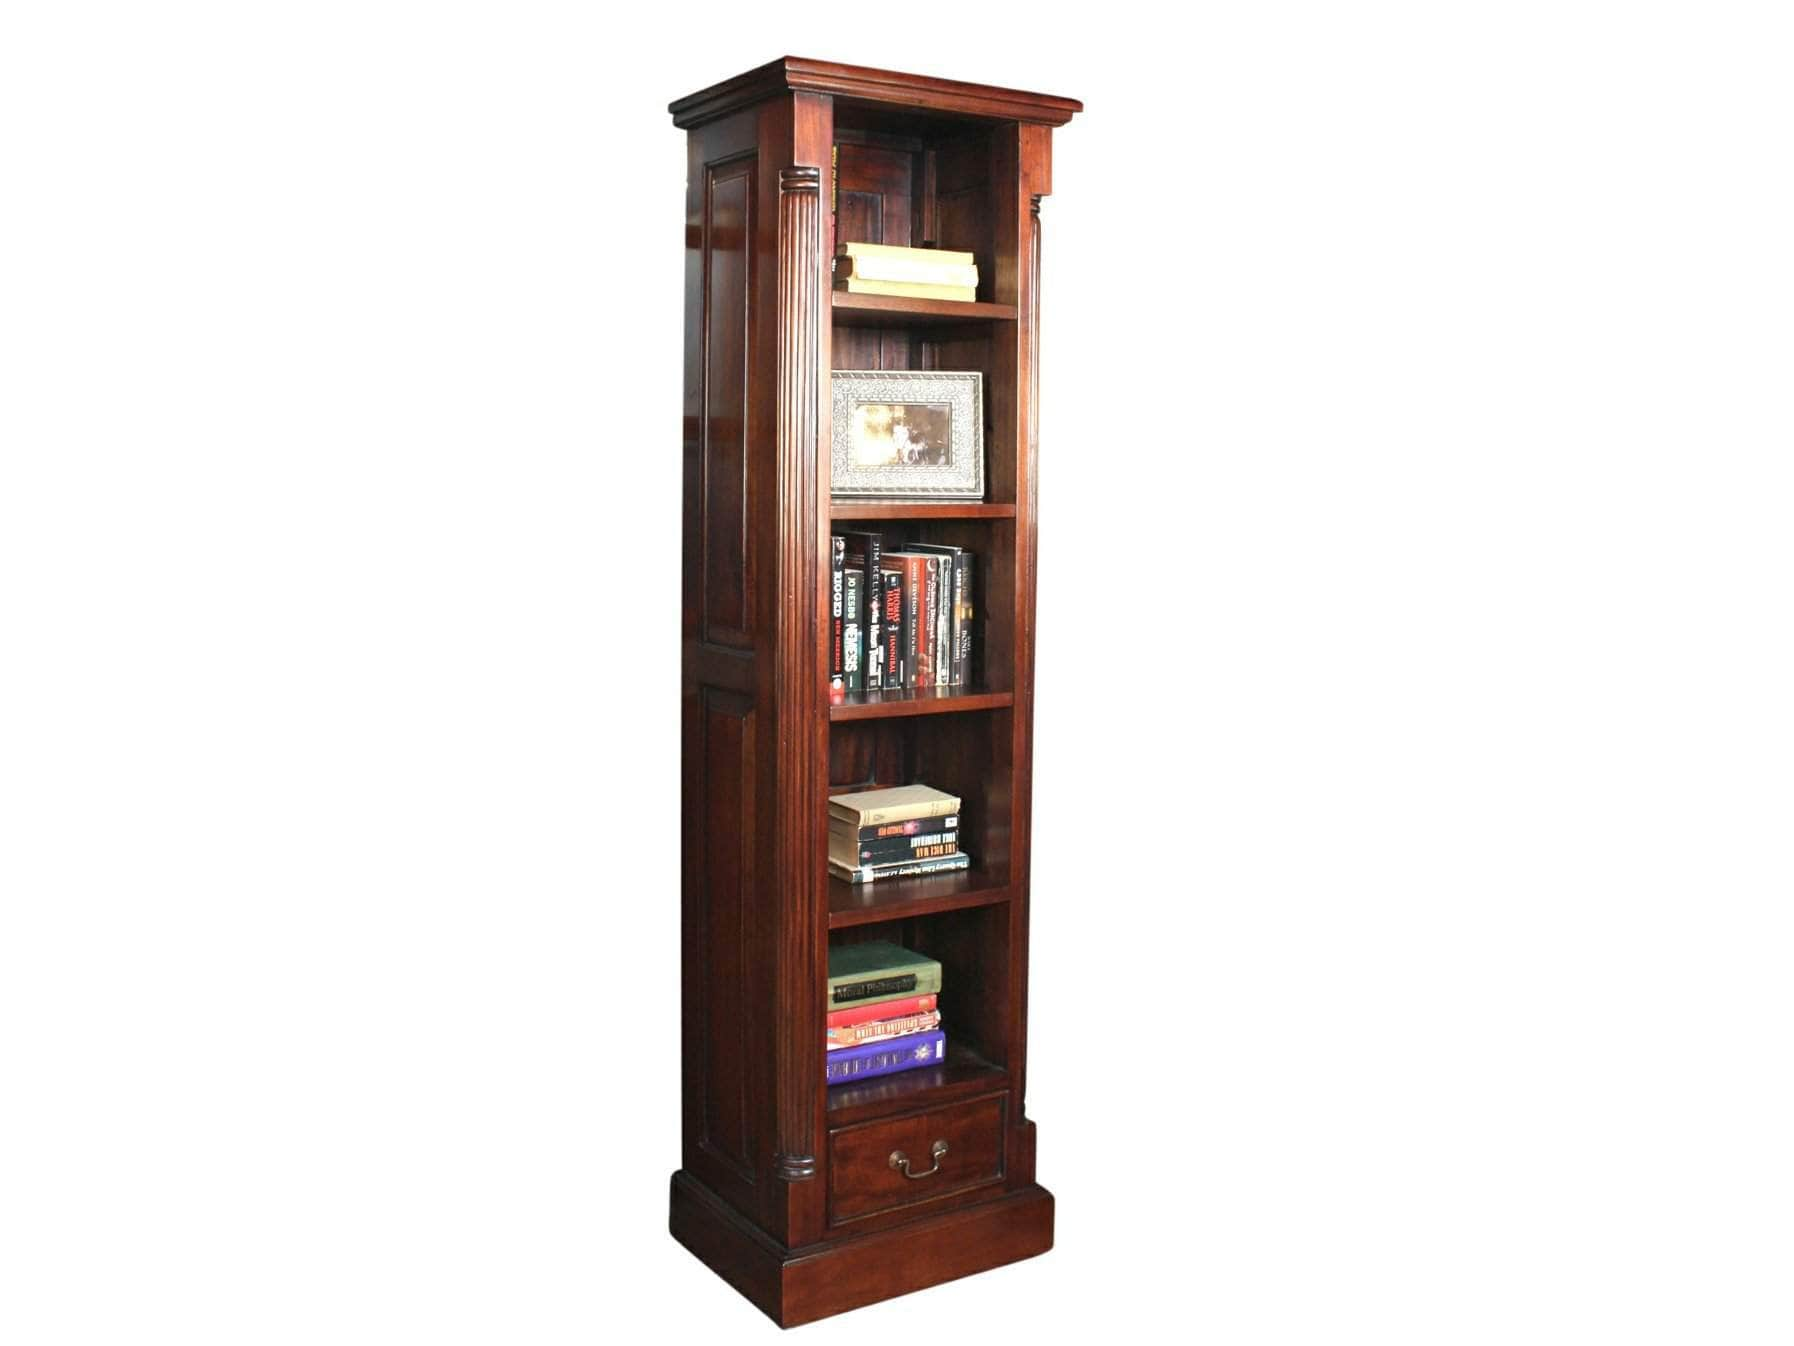 Narrow bookshelf made from mahogany wood, with five shelves and small drawer at the base